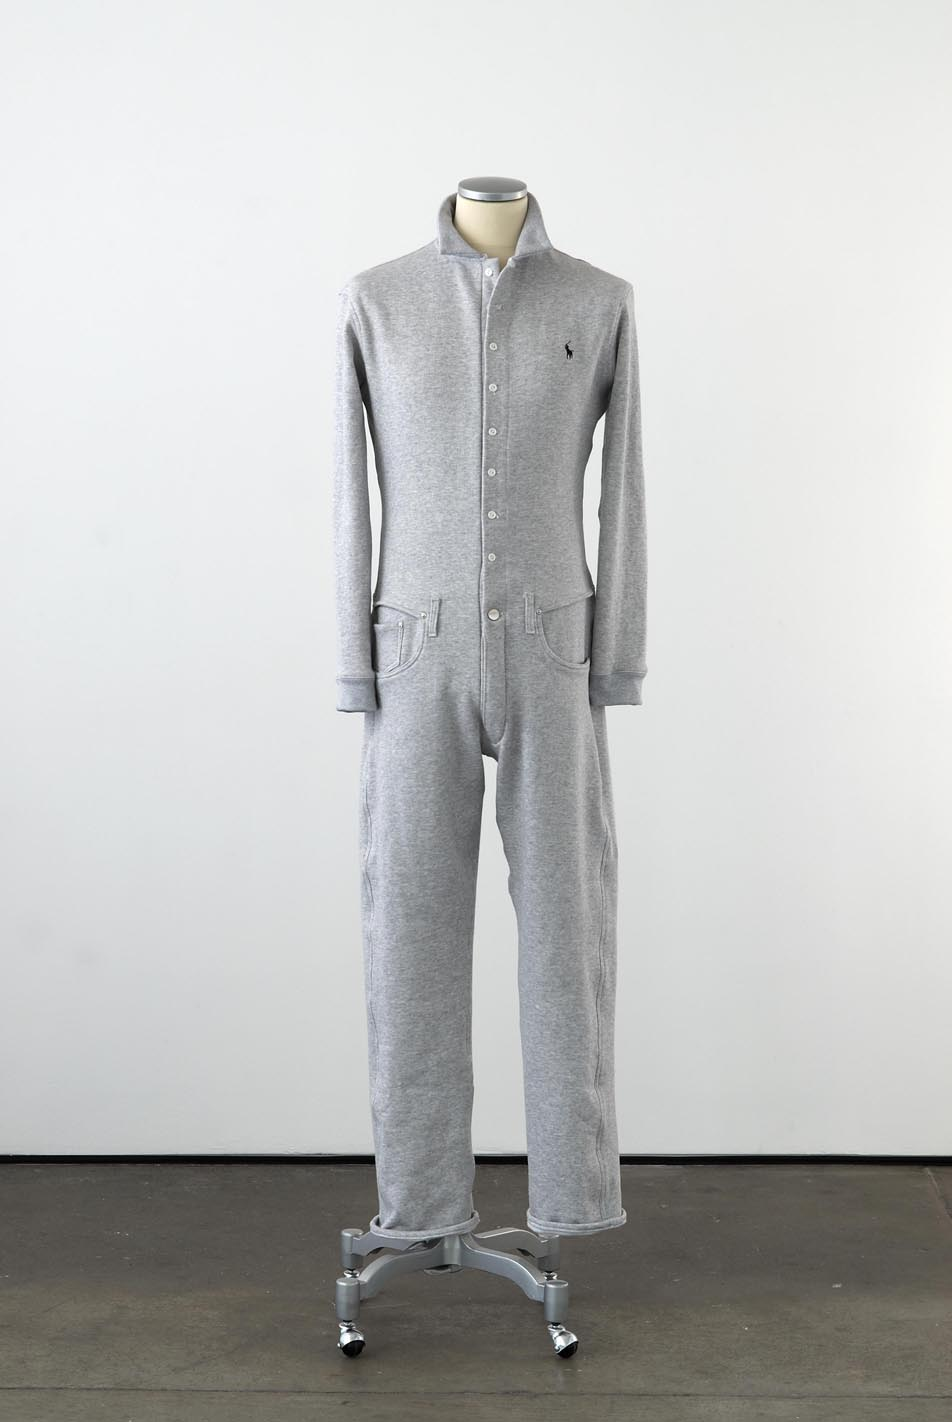 Matthew Darbyshire Standardised Production Clothing, Version 10 2009 Grey marle cotton, cotton jersey & fittings on mannequin 185 x 45 x 34 cm